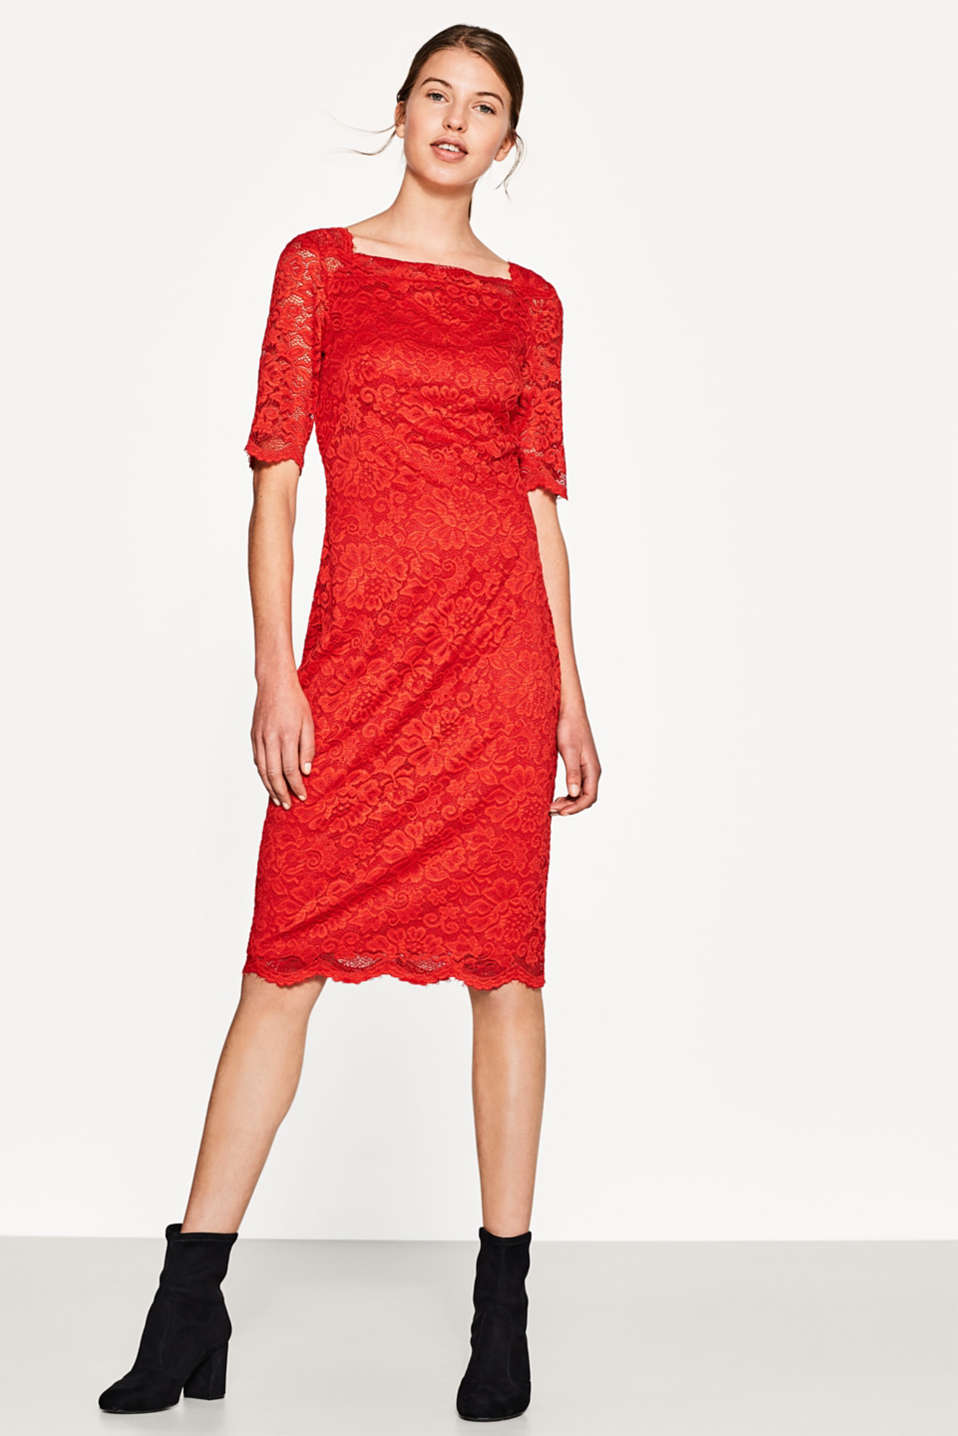 Lace dress with a square neckline